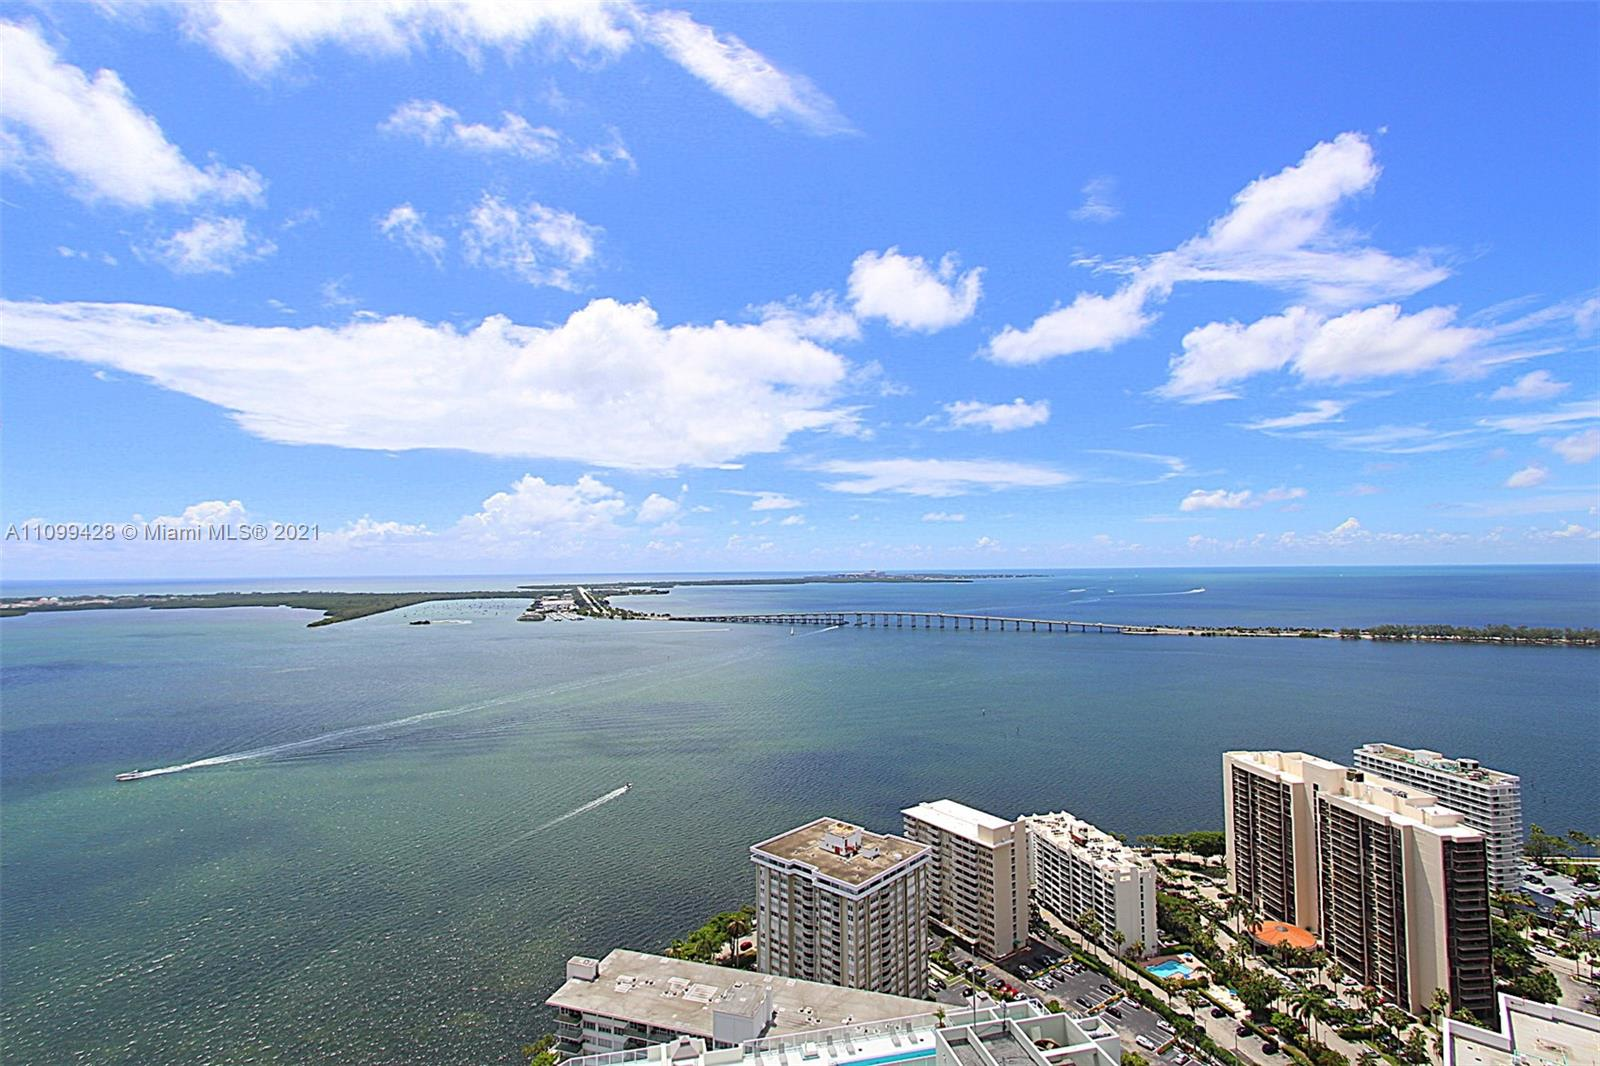 Sweeping & unobstructed water views from this 43rd floor penthouse located in the Brickell House Condo! Built in 2014, this magnificent high rise offers high end amenities which include 2 pools, gym, spa and valet service. Double main entry way foyer leads you to an ample and open main living area with floor to ceiling glass throughout. Water views can be had from almost all areas of this unit. Split floor plan provides a well-appointed master suite including enormous walk-in closet, master bathroom with soaking tub, separate shower and double sink vanity. Maids quarter next to laundry area. Balcony spans the complete length of unit with access points from all rooms. This is a one of a kind unit not to be missed!